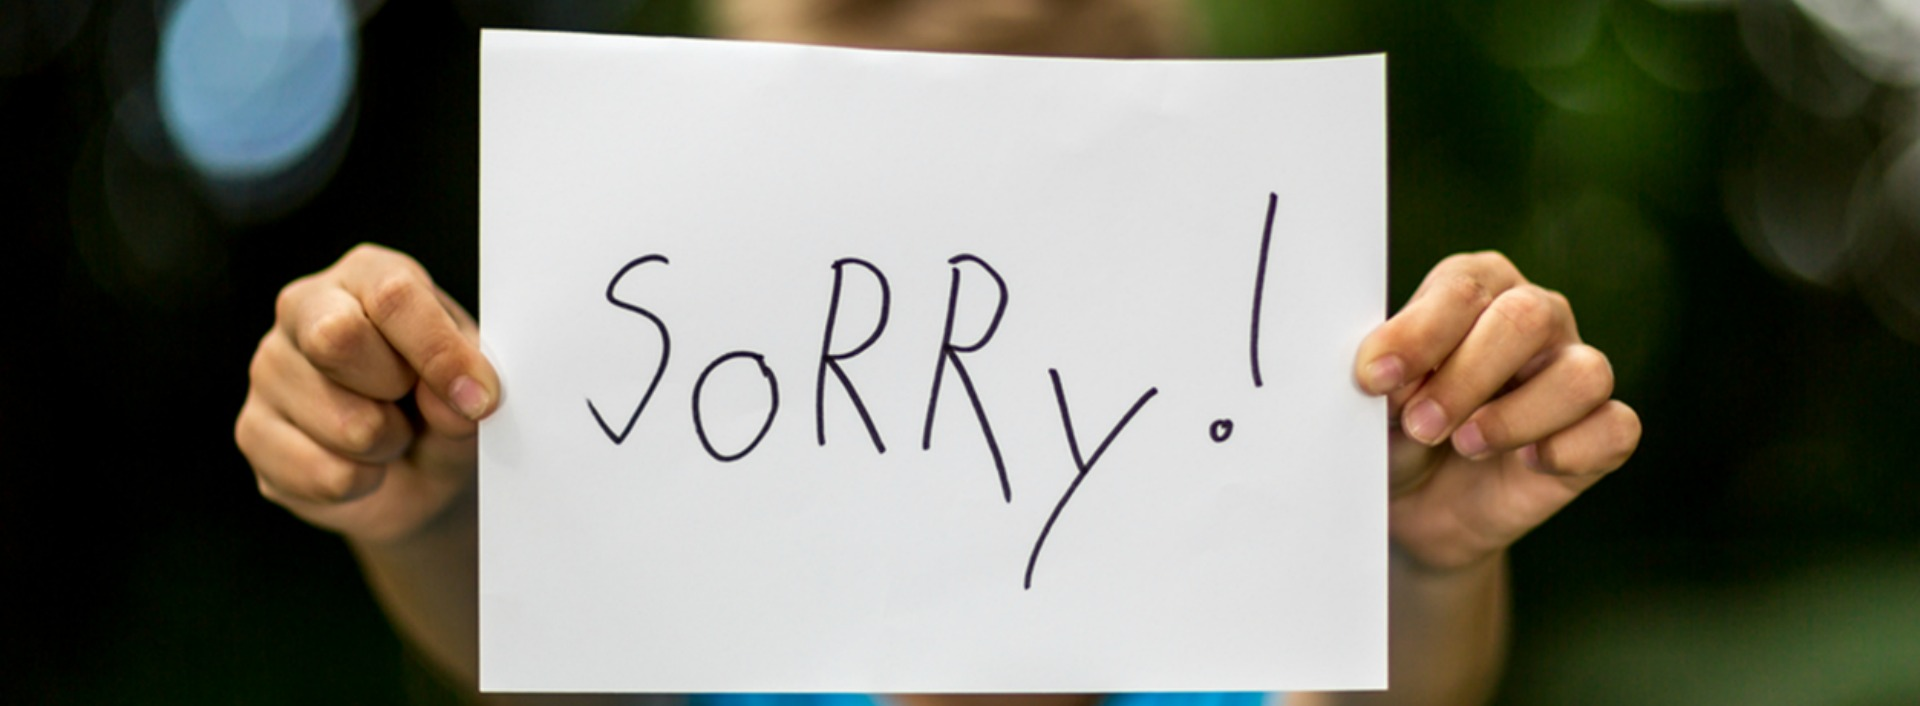 "Say ""sorry"" in English"